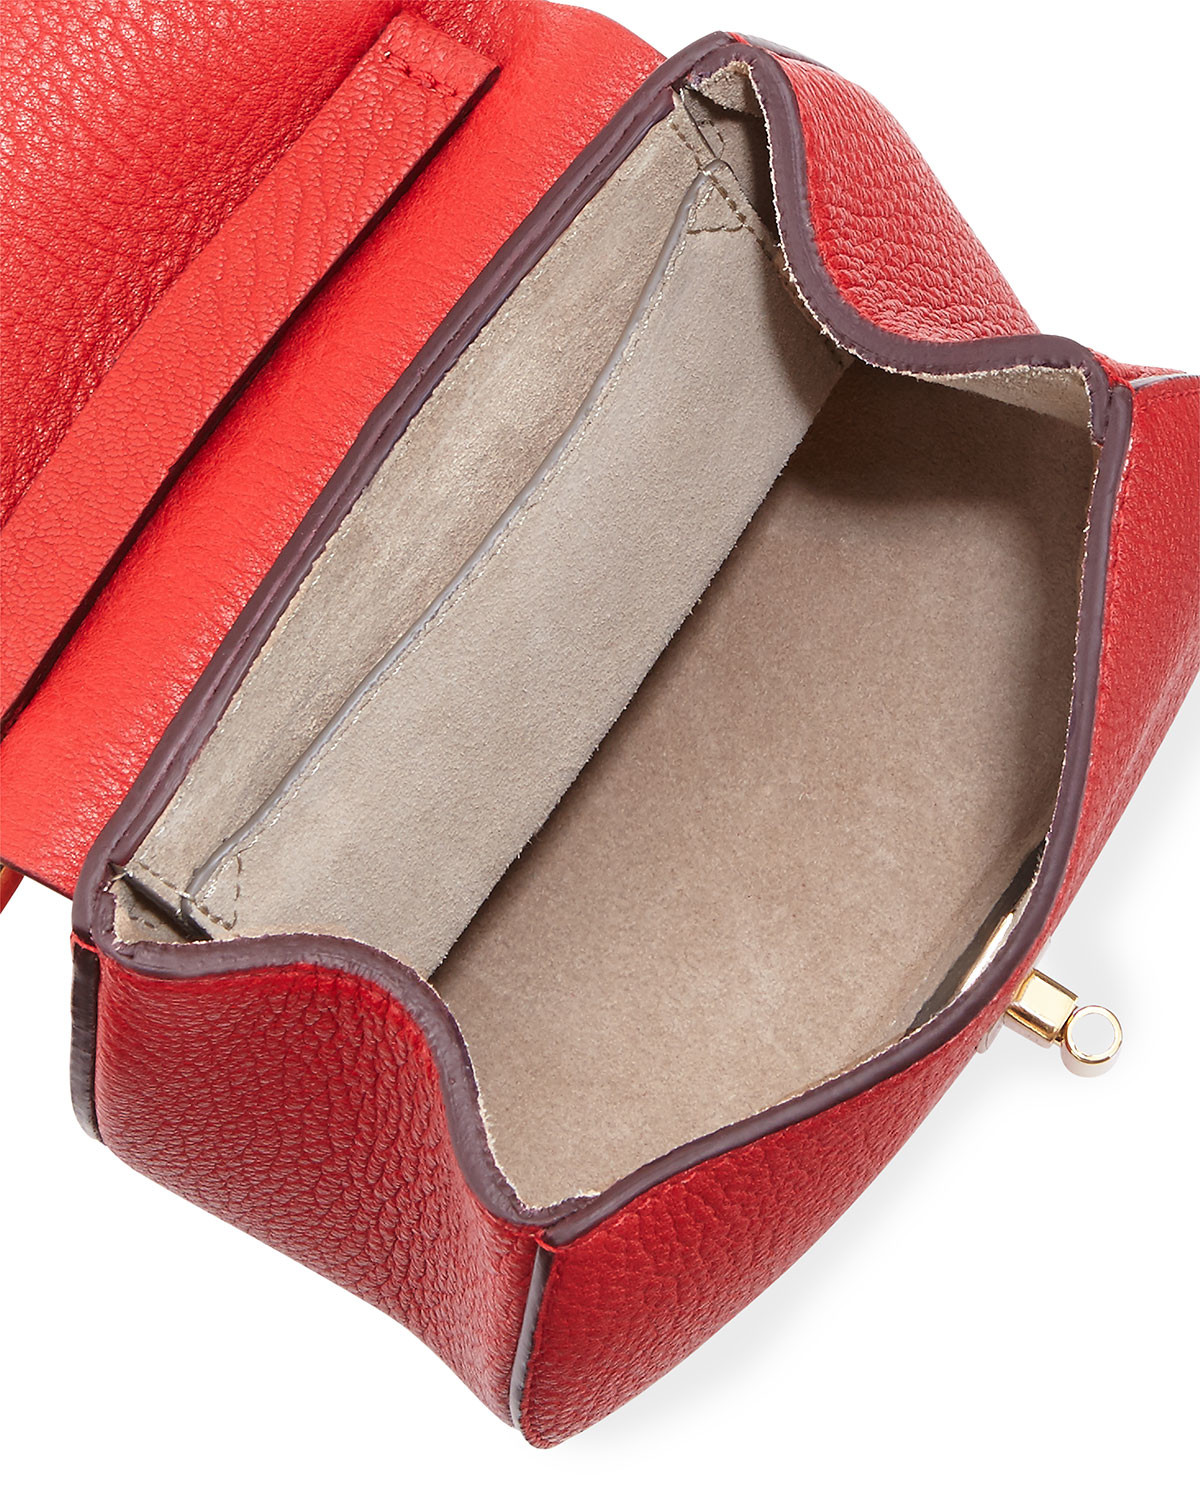 Chlo¨¦ Drew Nano Leather Saddle Bag in Red (PLAID RED)   Lyst